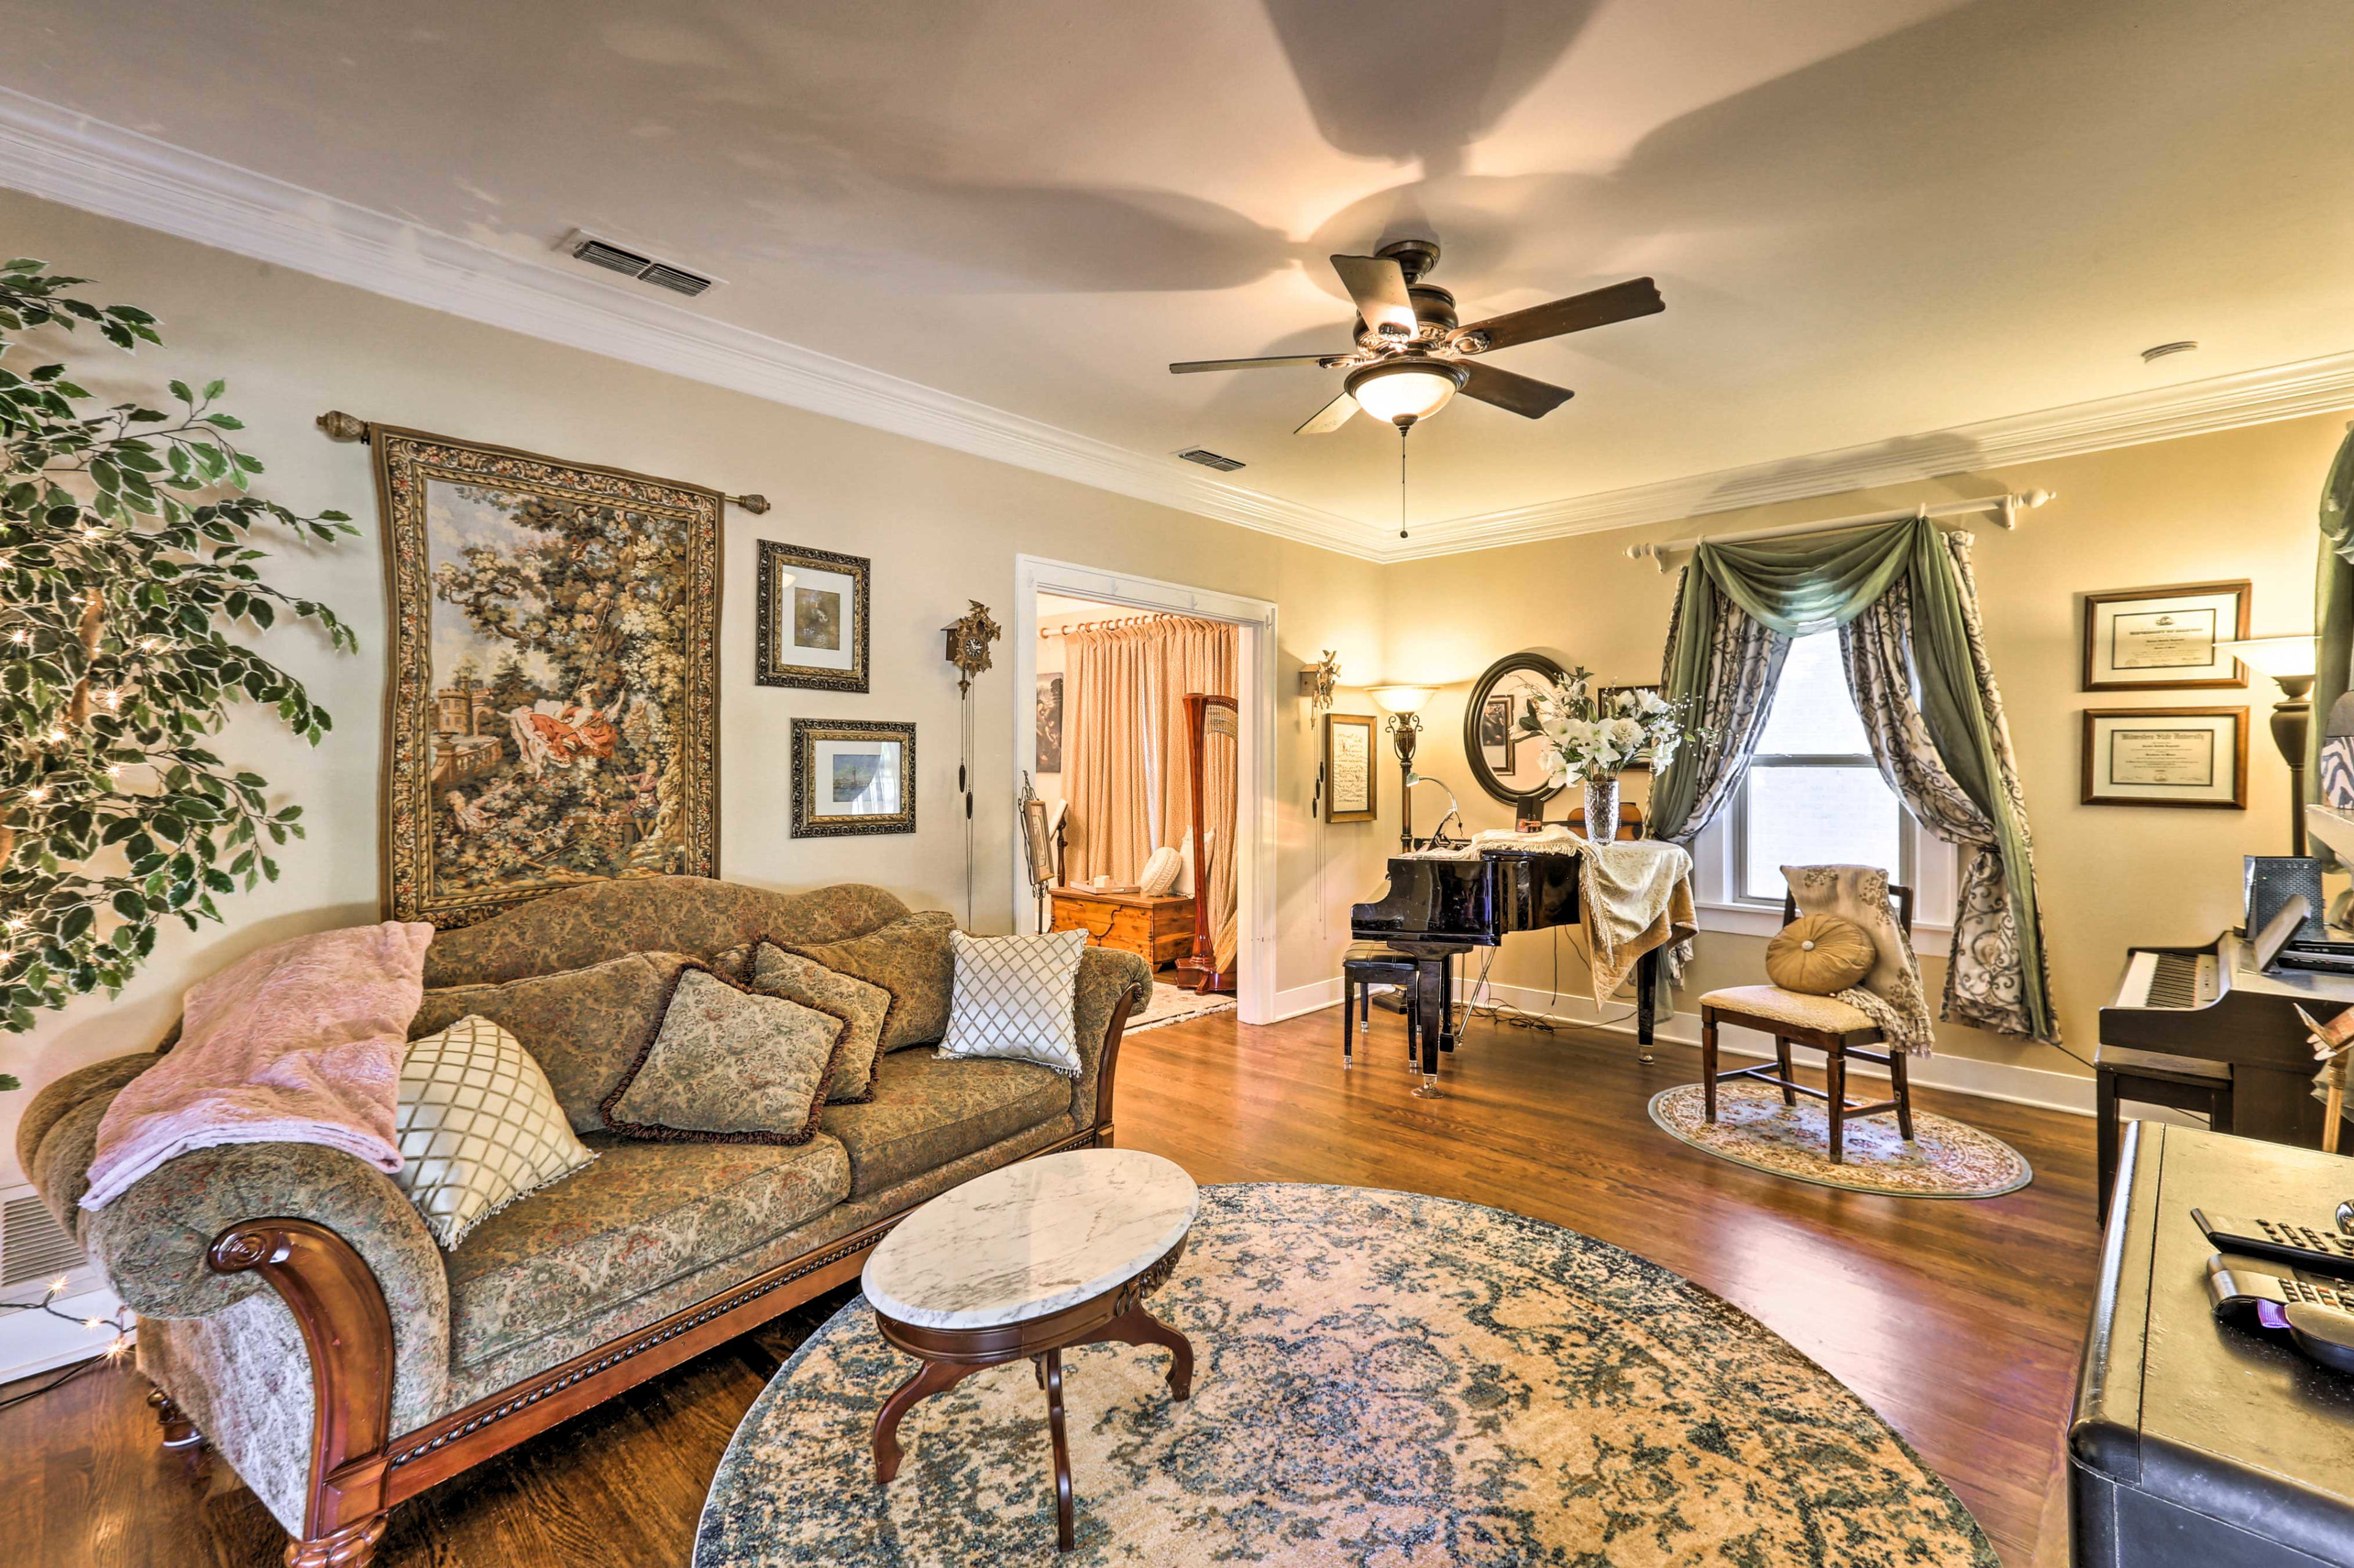 The vacation rental is full of character!